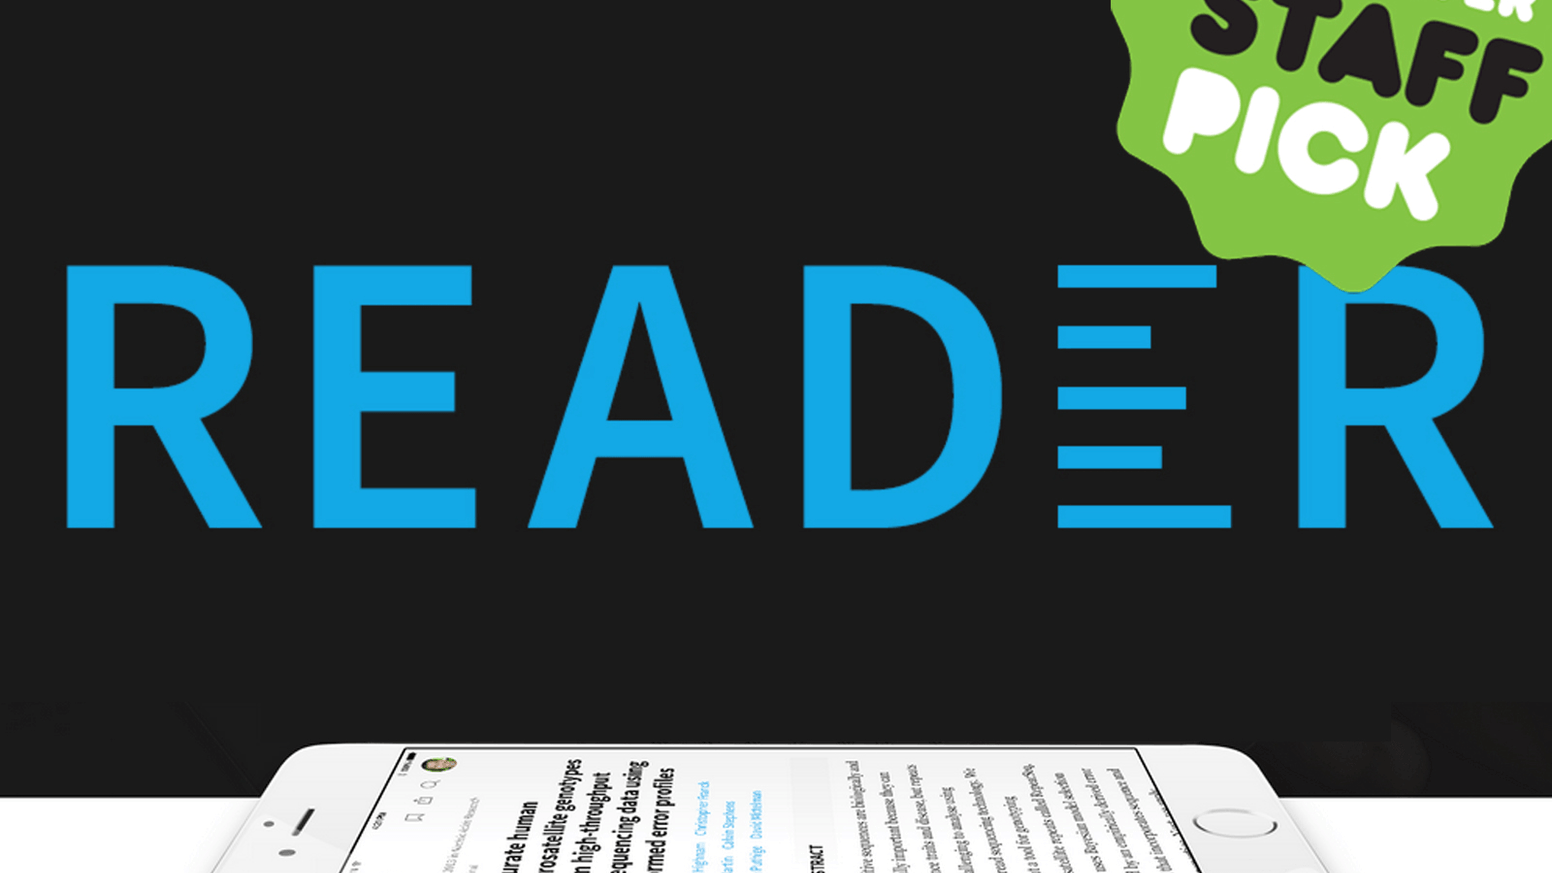 Transcend the page and navigate research with deep context and collaboration.